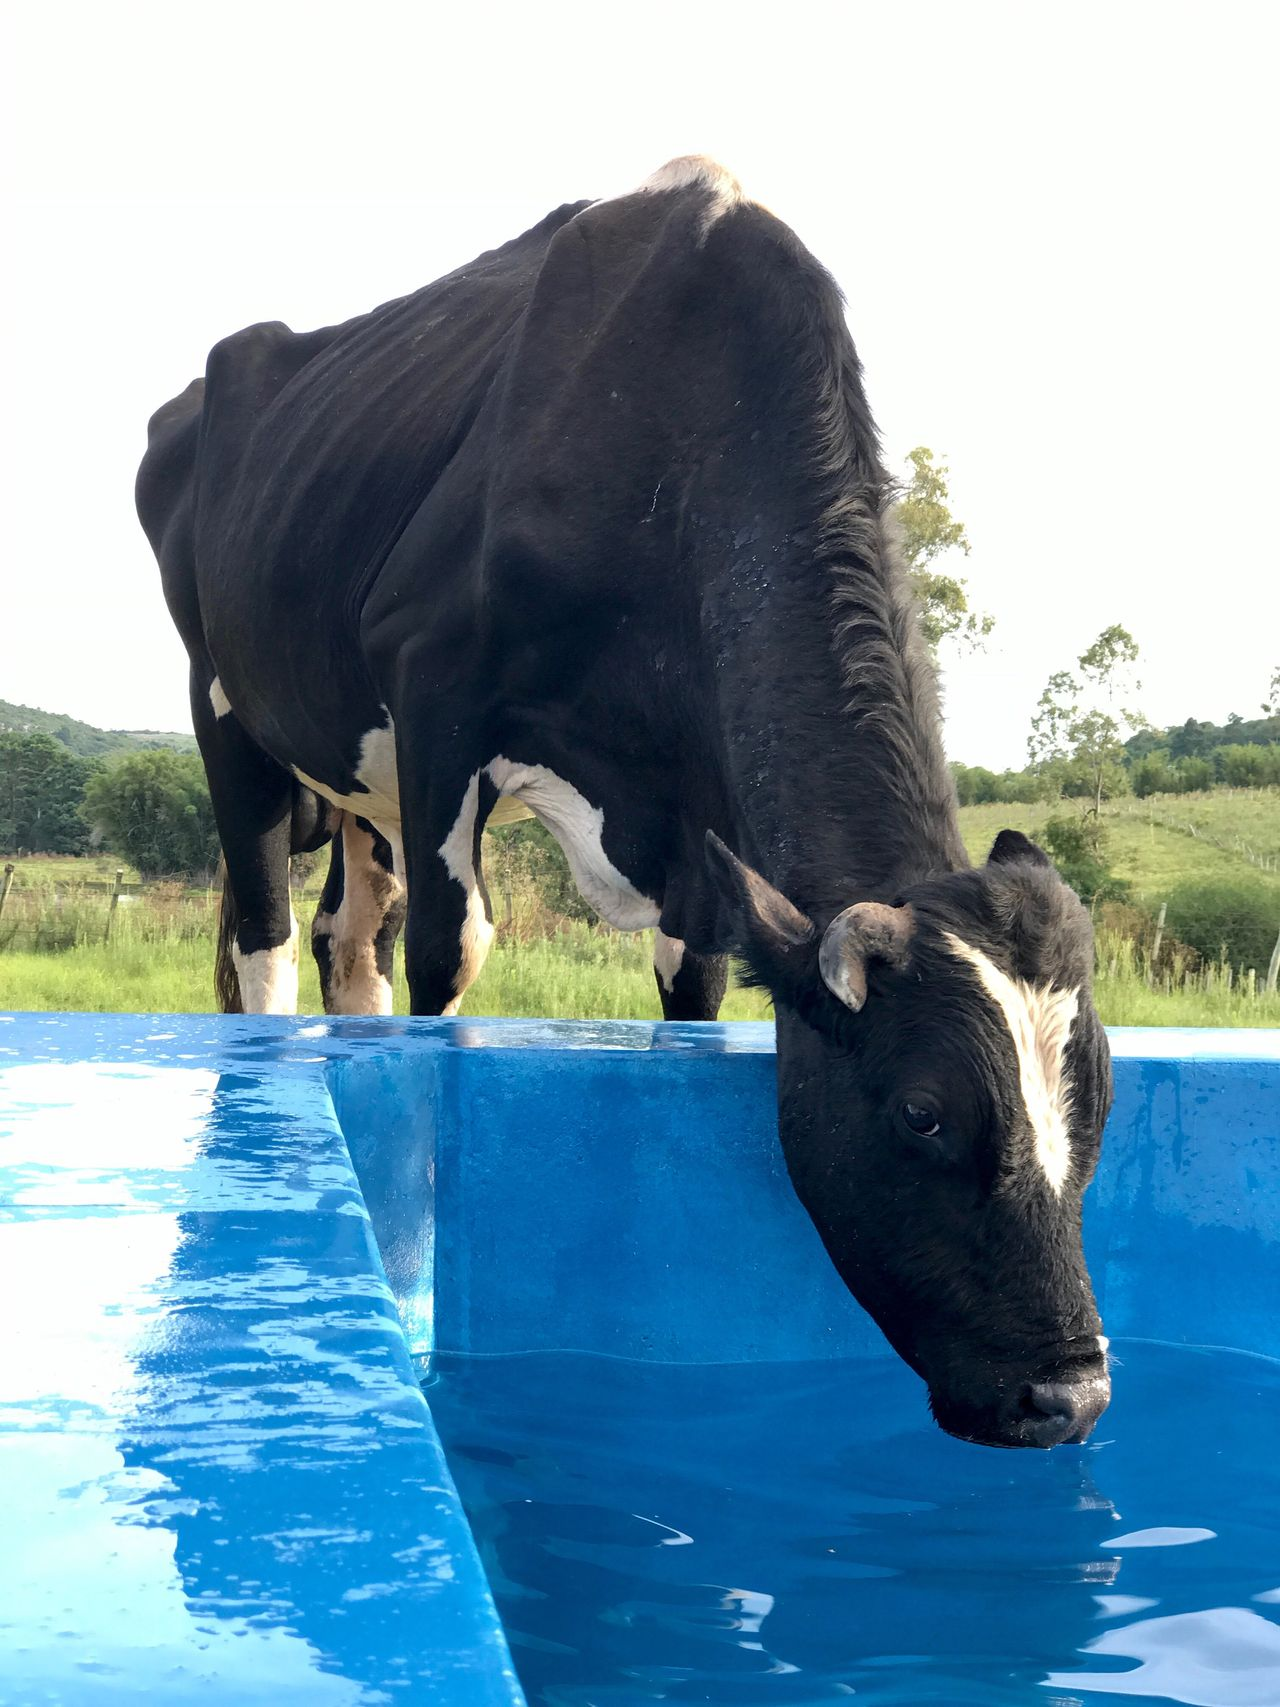 Animal Themes Mammal Domestic Animals Outdoors Day Water Nature No People Sky Drinkiing Cow Rural Scene Animal One Animal